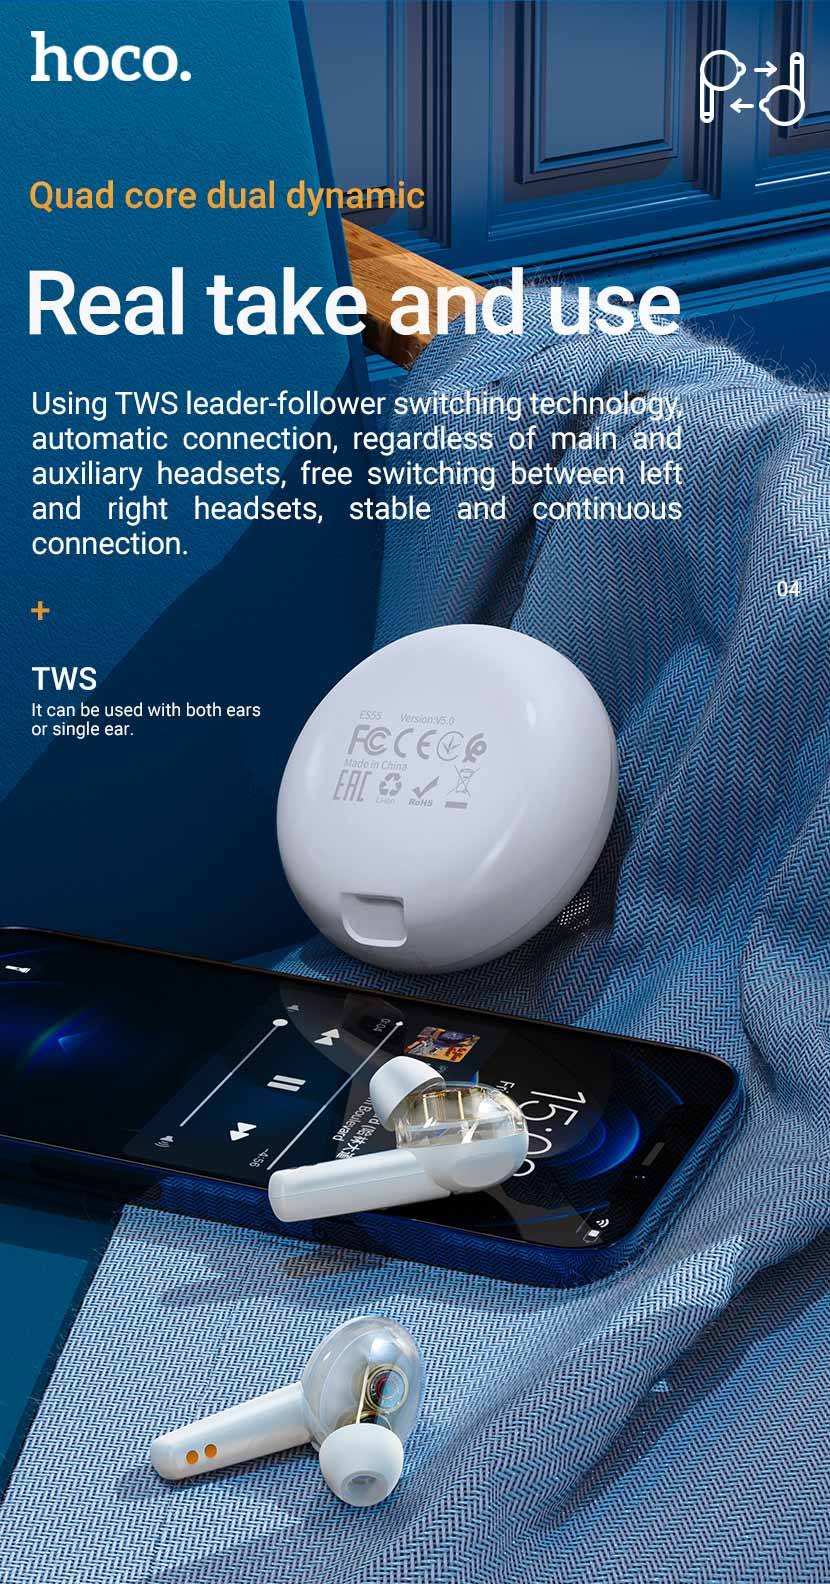 hoco news es55 songful tws dual moving coil wireless bt headset connection en